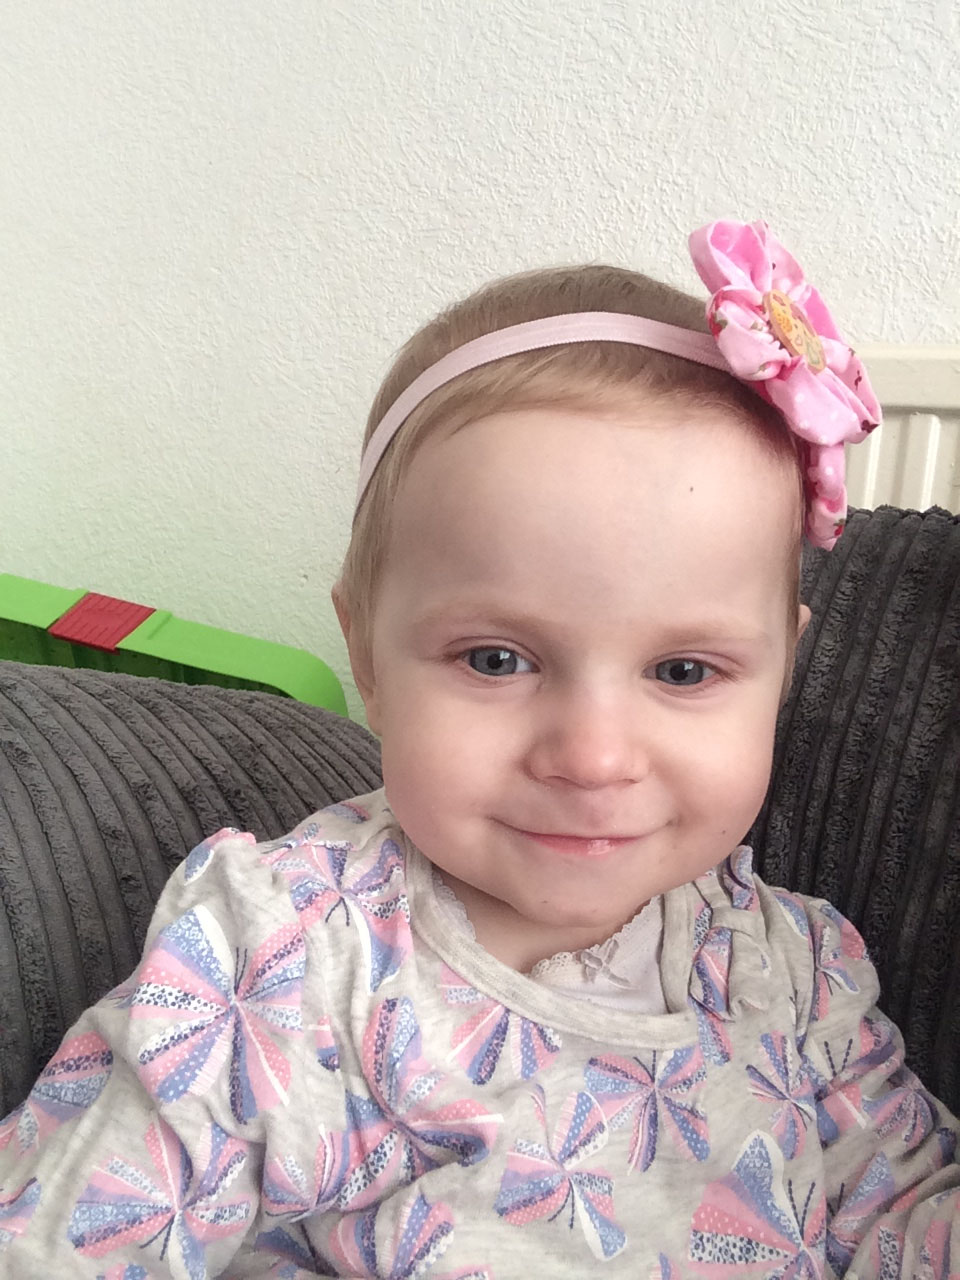 Krystal was diagnosed with the rare childhood cancer rhabdomyosarcoma at 11 months old